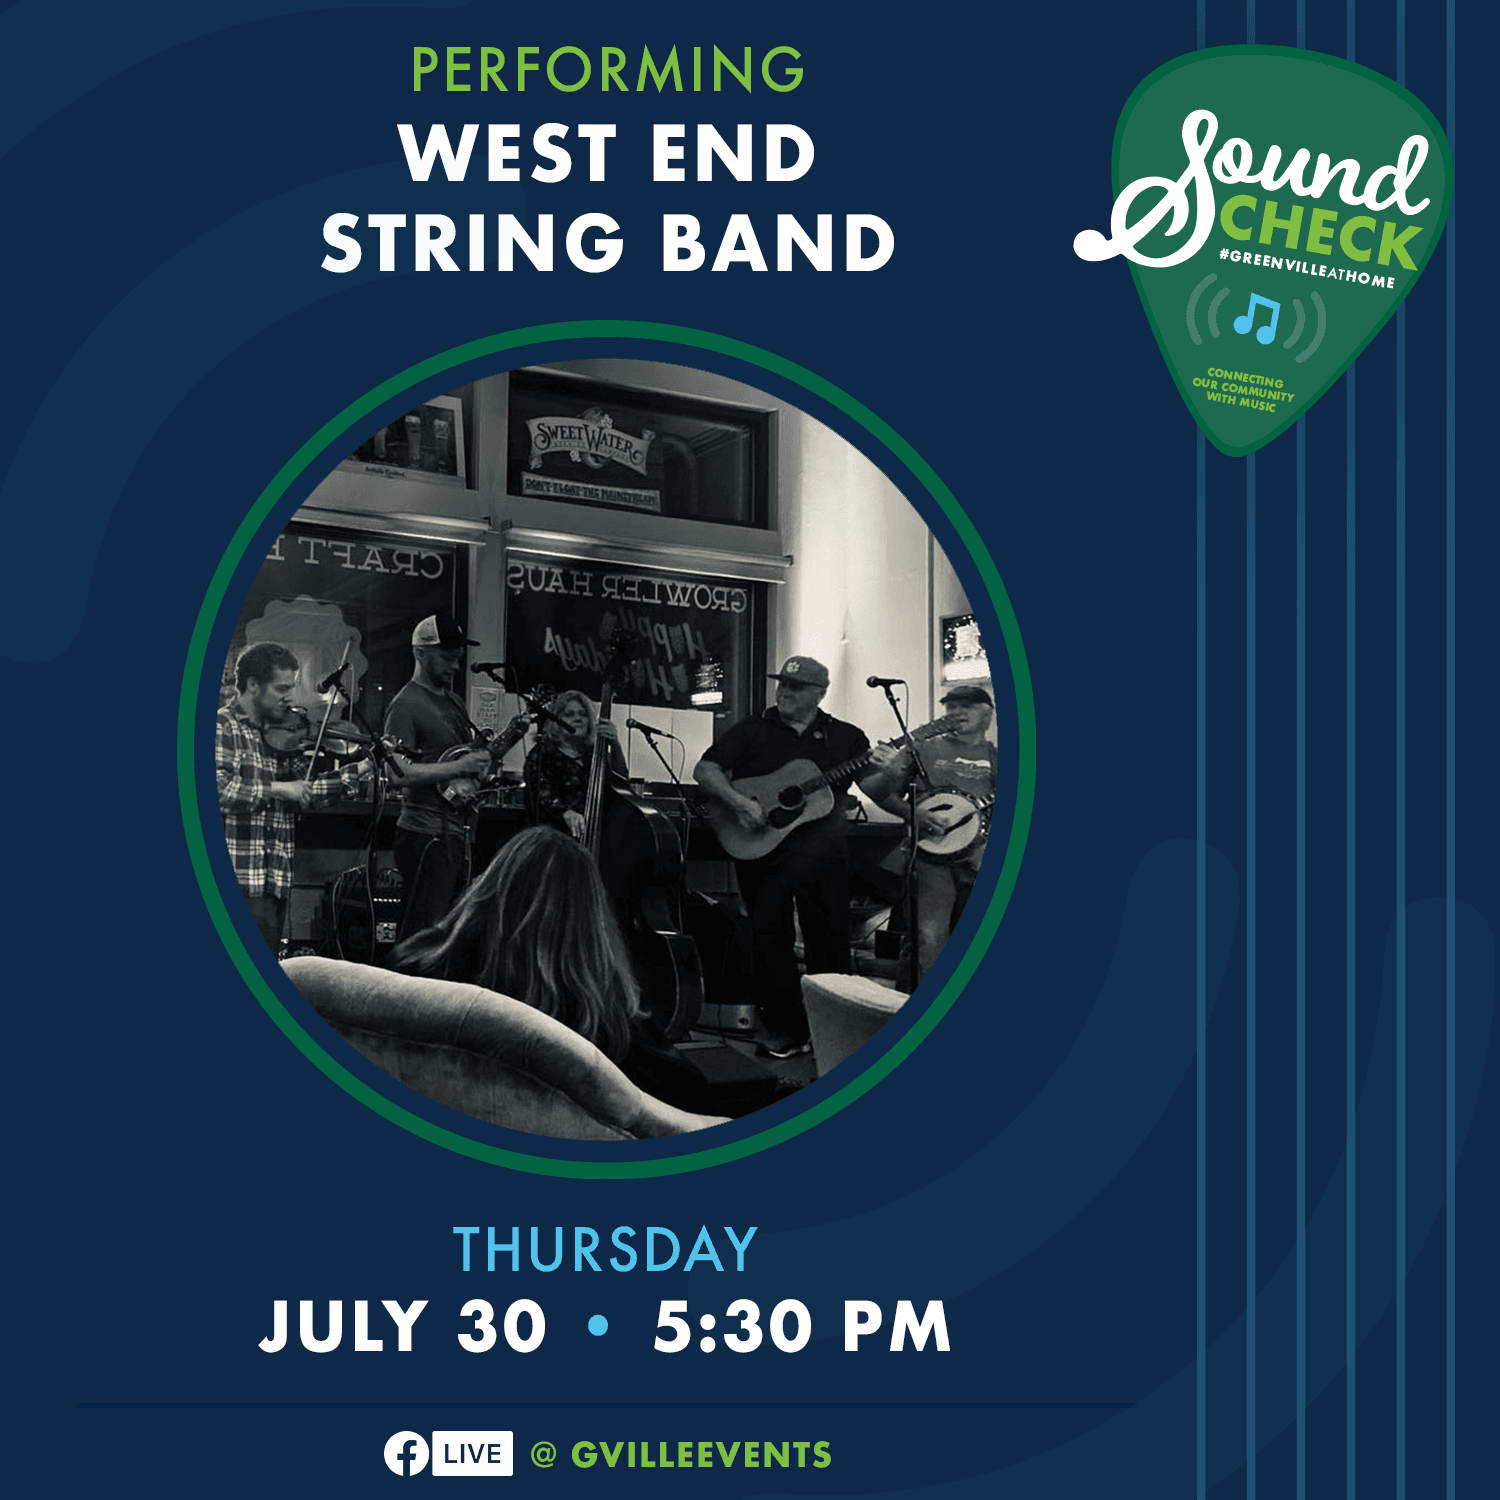 West End String Band - July 30